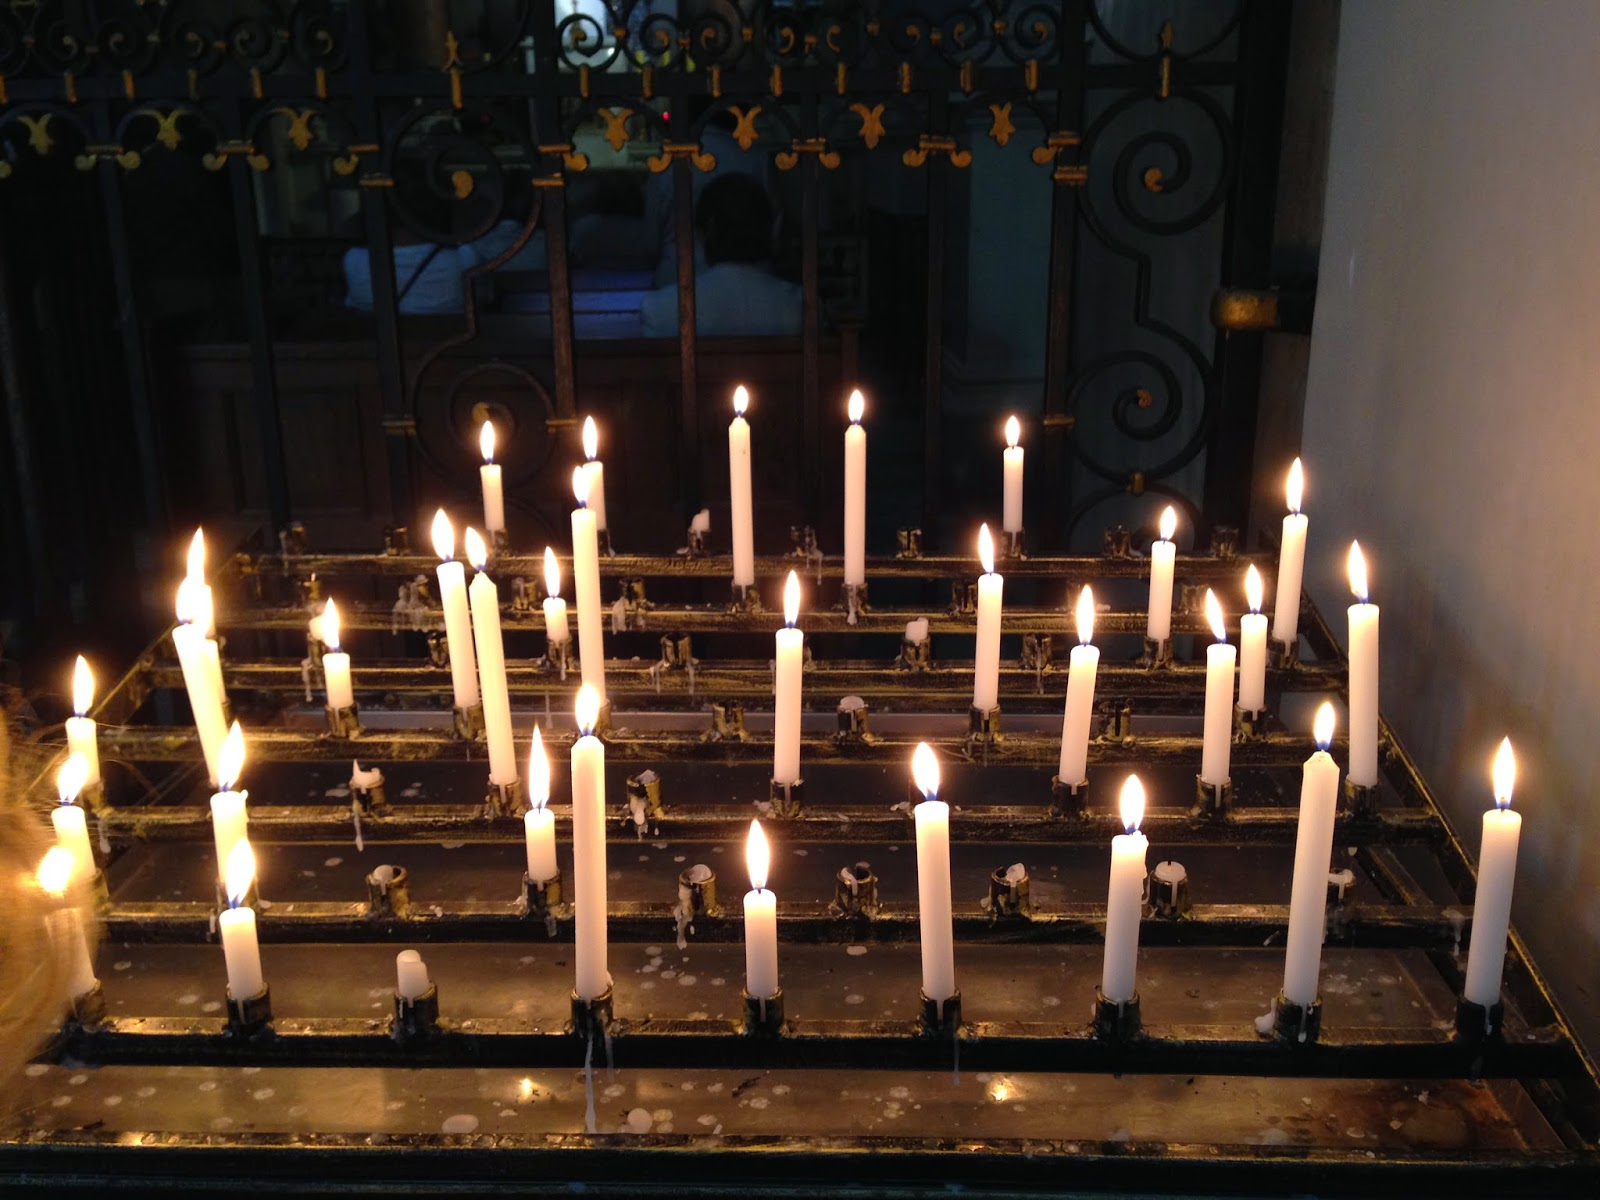 Candles in the All Saints Church on Grzybowski Square by Maja Trochimczyk